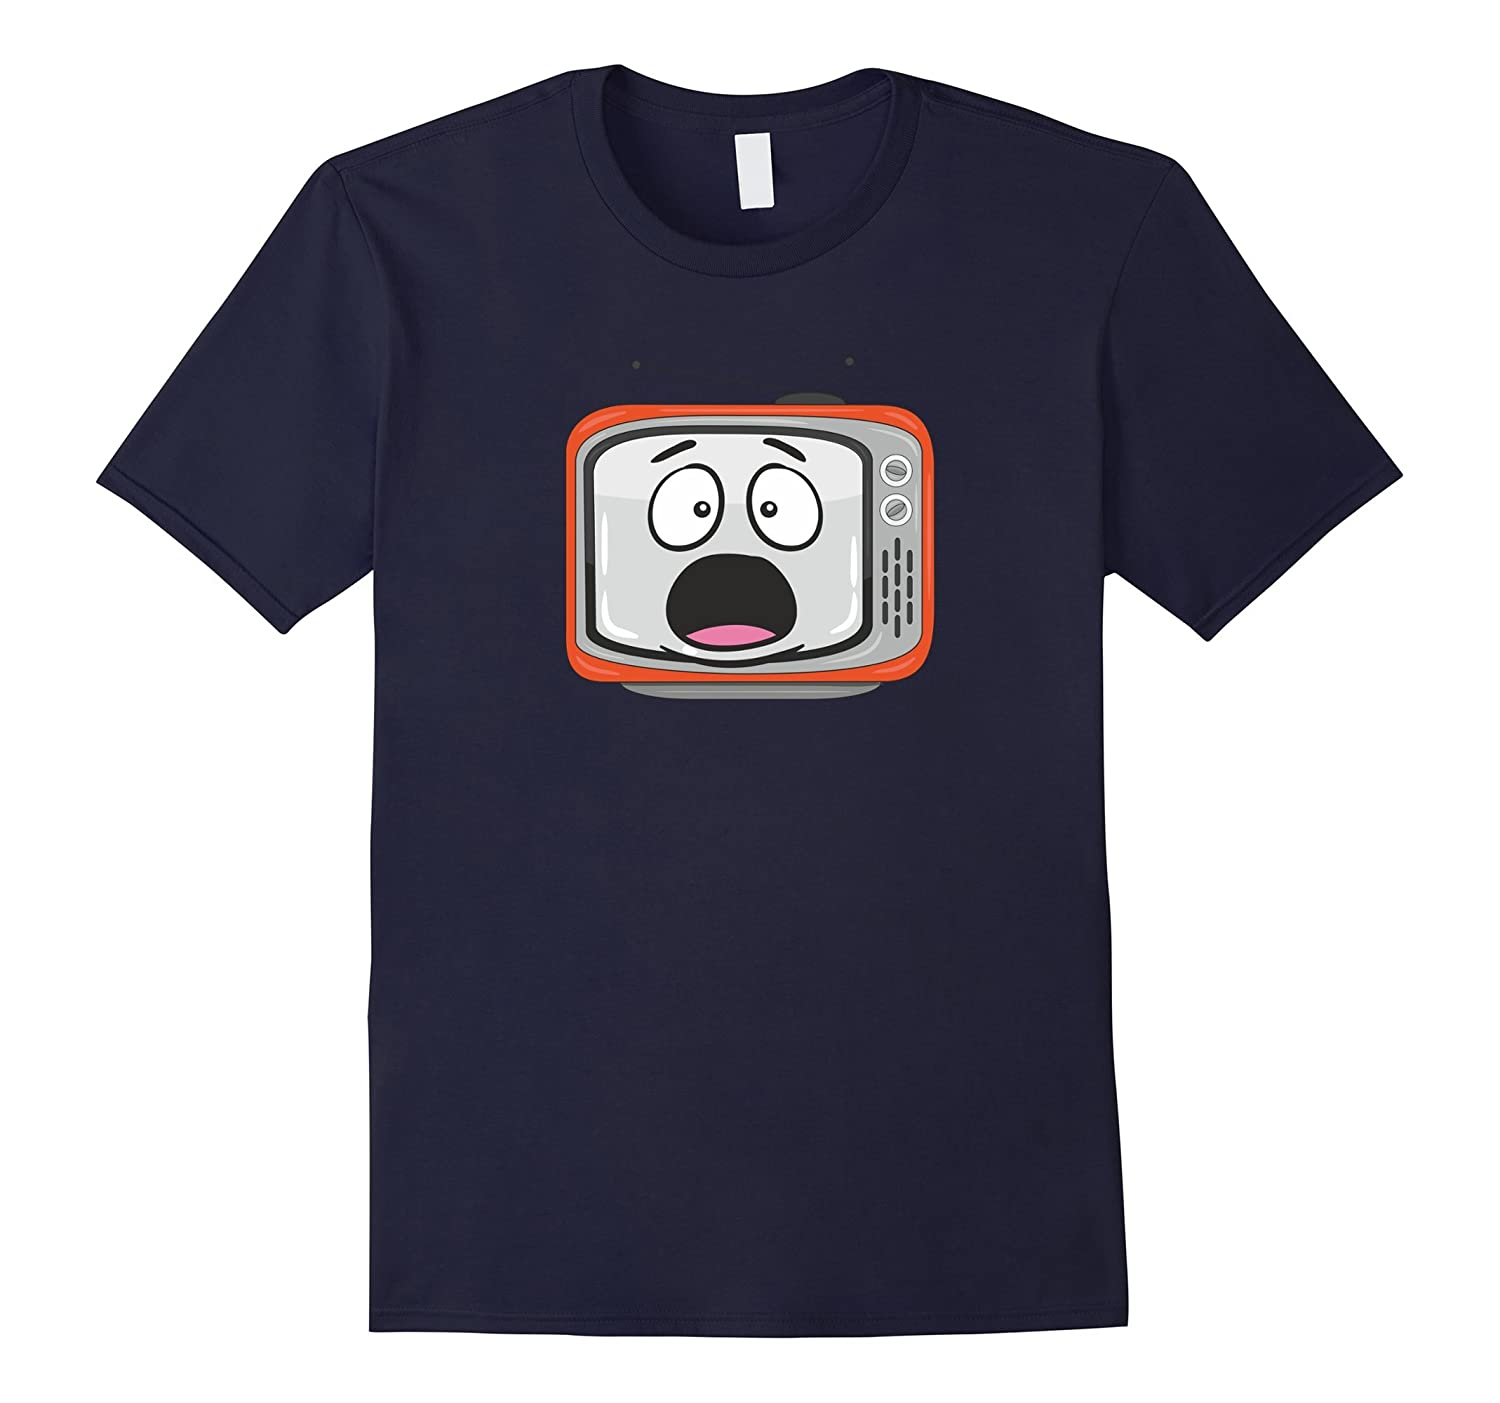 Shocked Retro TV Emoticon T Shirt Gift Boys Girls Women Men-Art